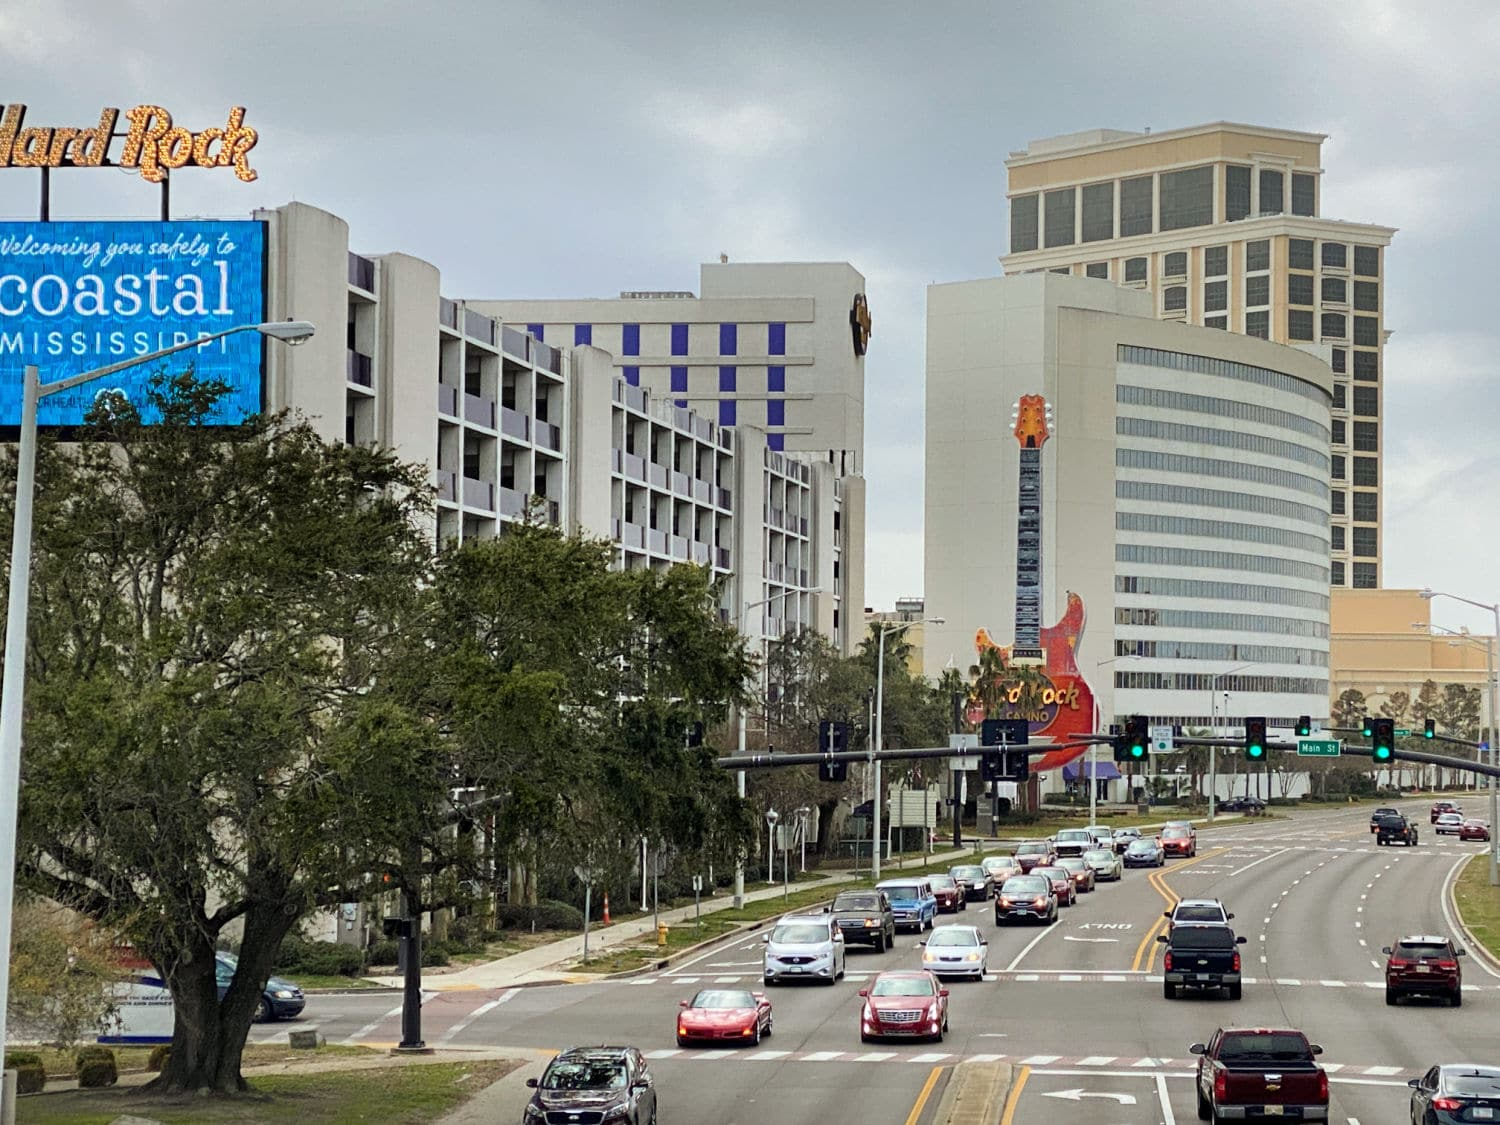 street-view-of-hotels-and-casinos-in-Biloxi